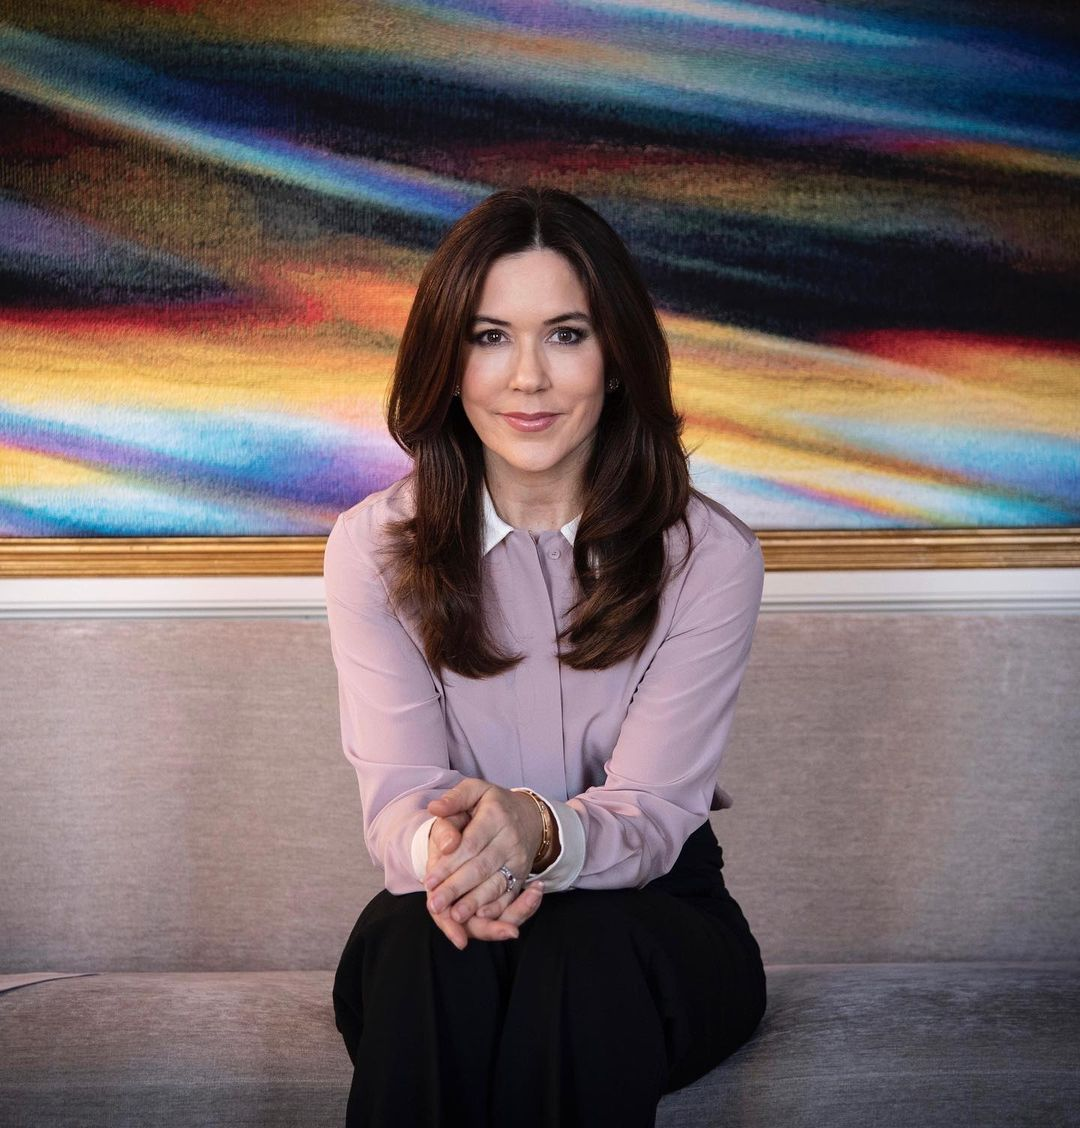 Crown Princess Mary celebrated International Women's Day in a Unique way